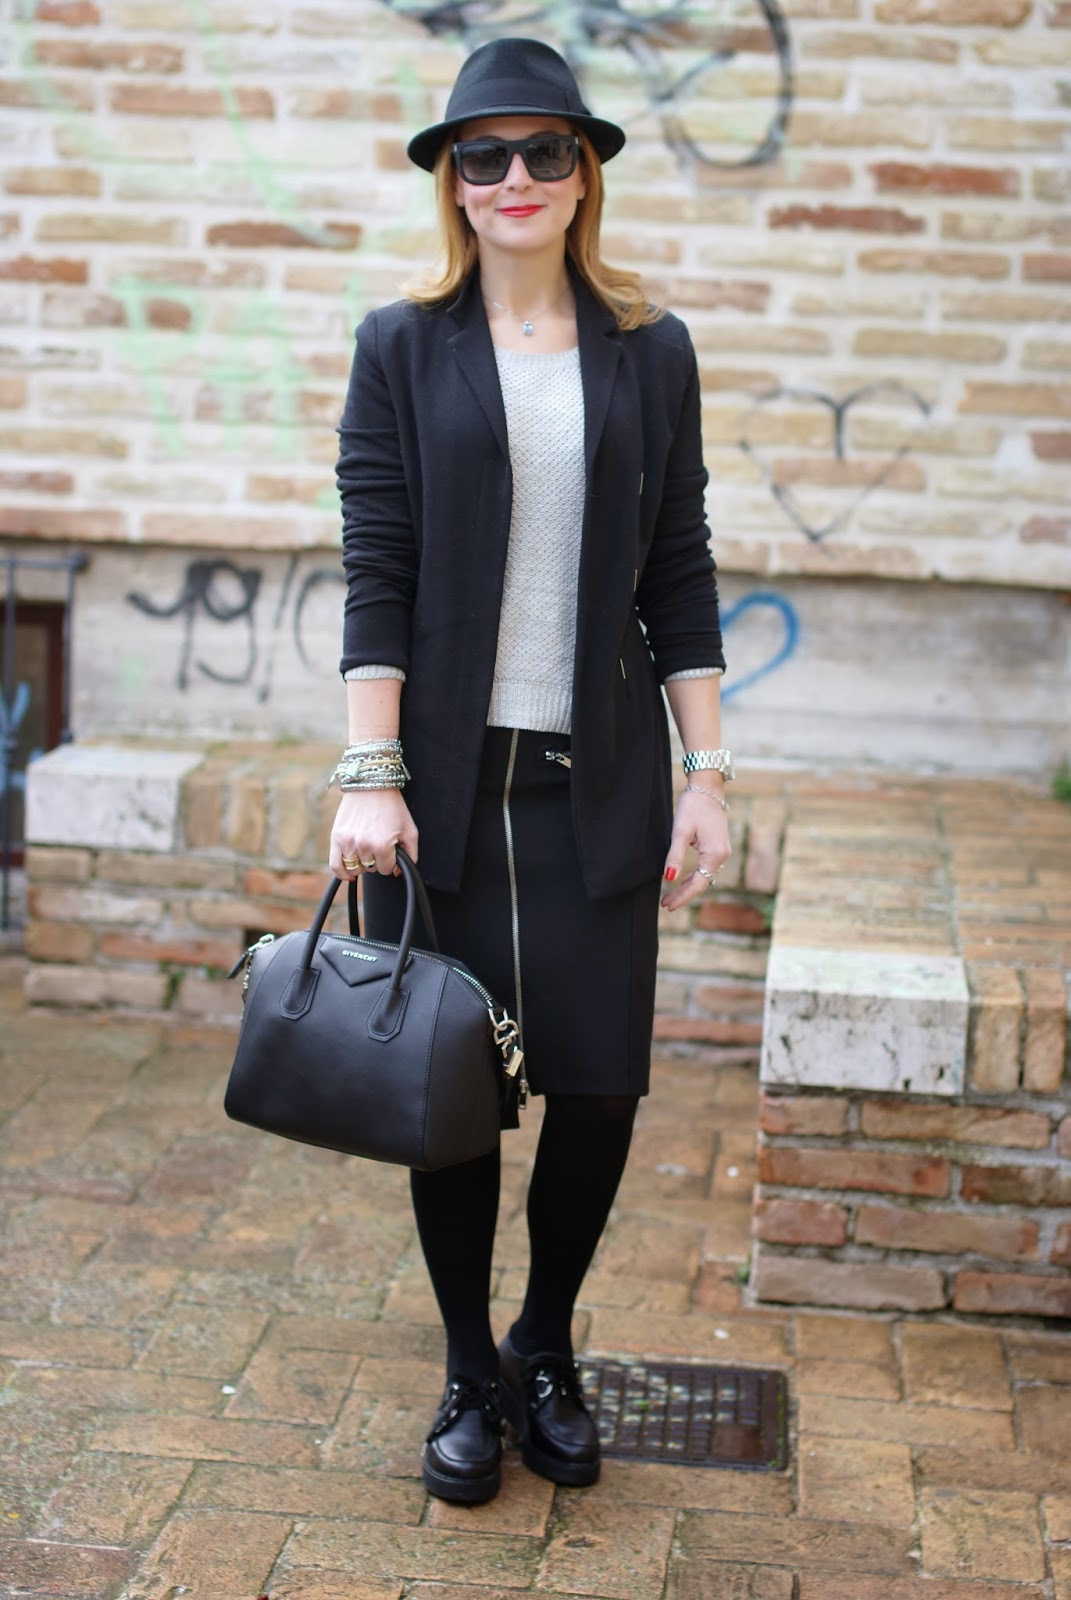 Zara zipper skirt, Nico Nico blazer, Givenchy Antigona bag, Fashion and Cookies, fashion blogger